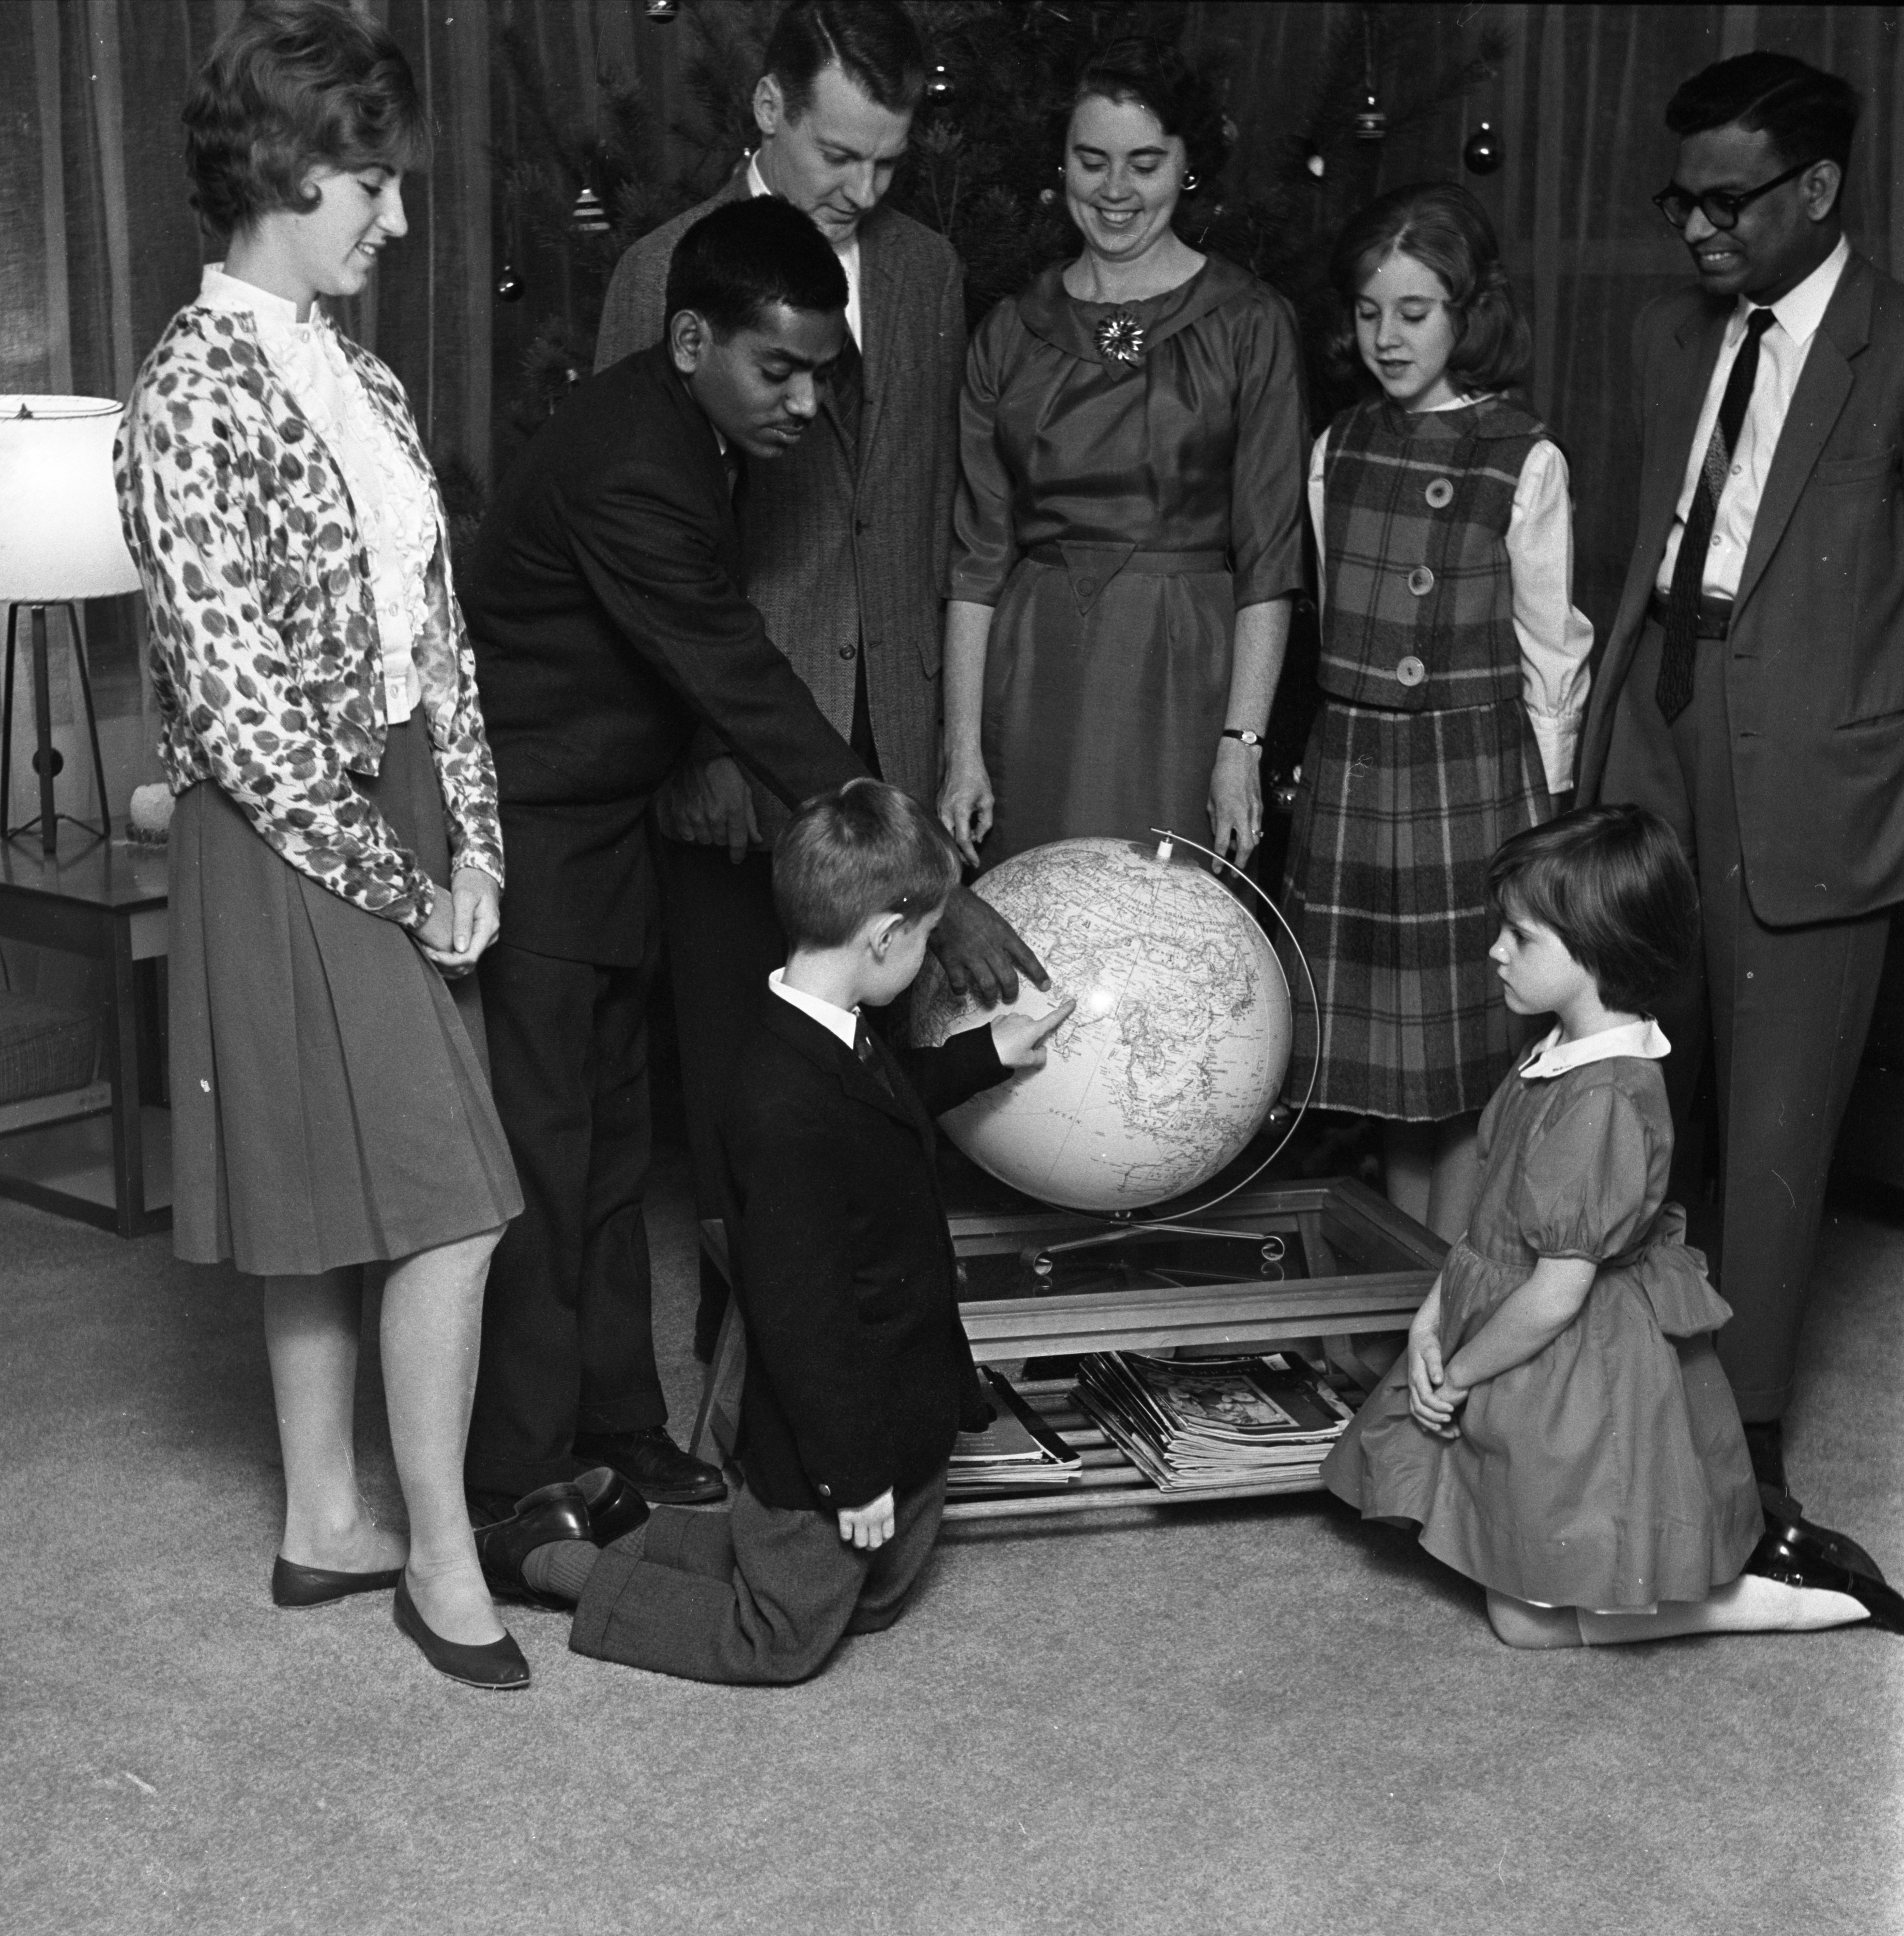 Dr. & Mrs. Gingles & Family Host UM Students From India, December 18, 1962 image